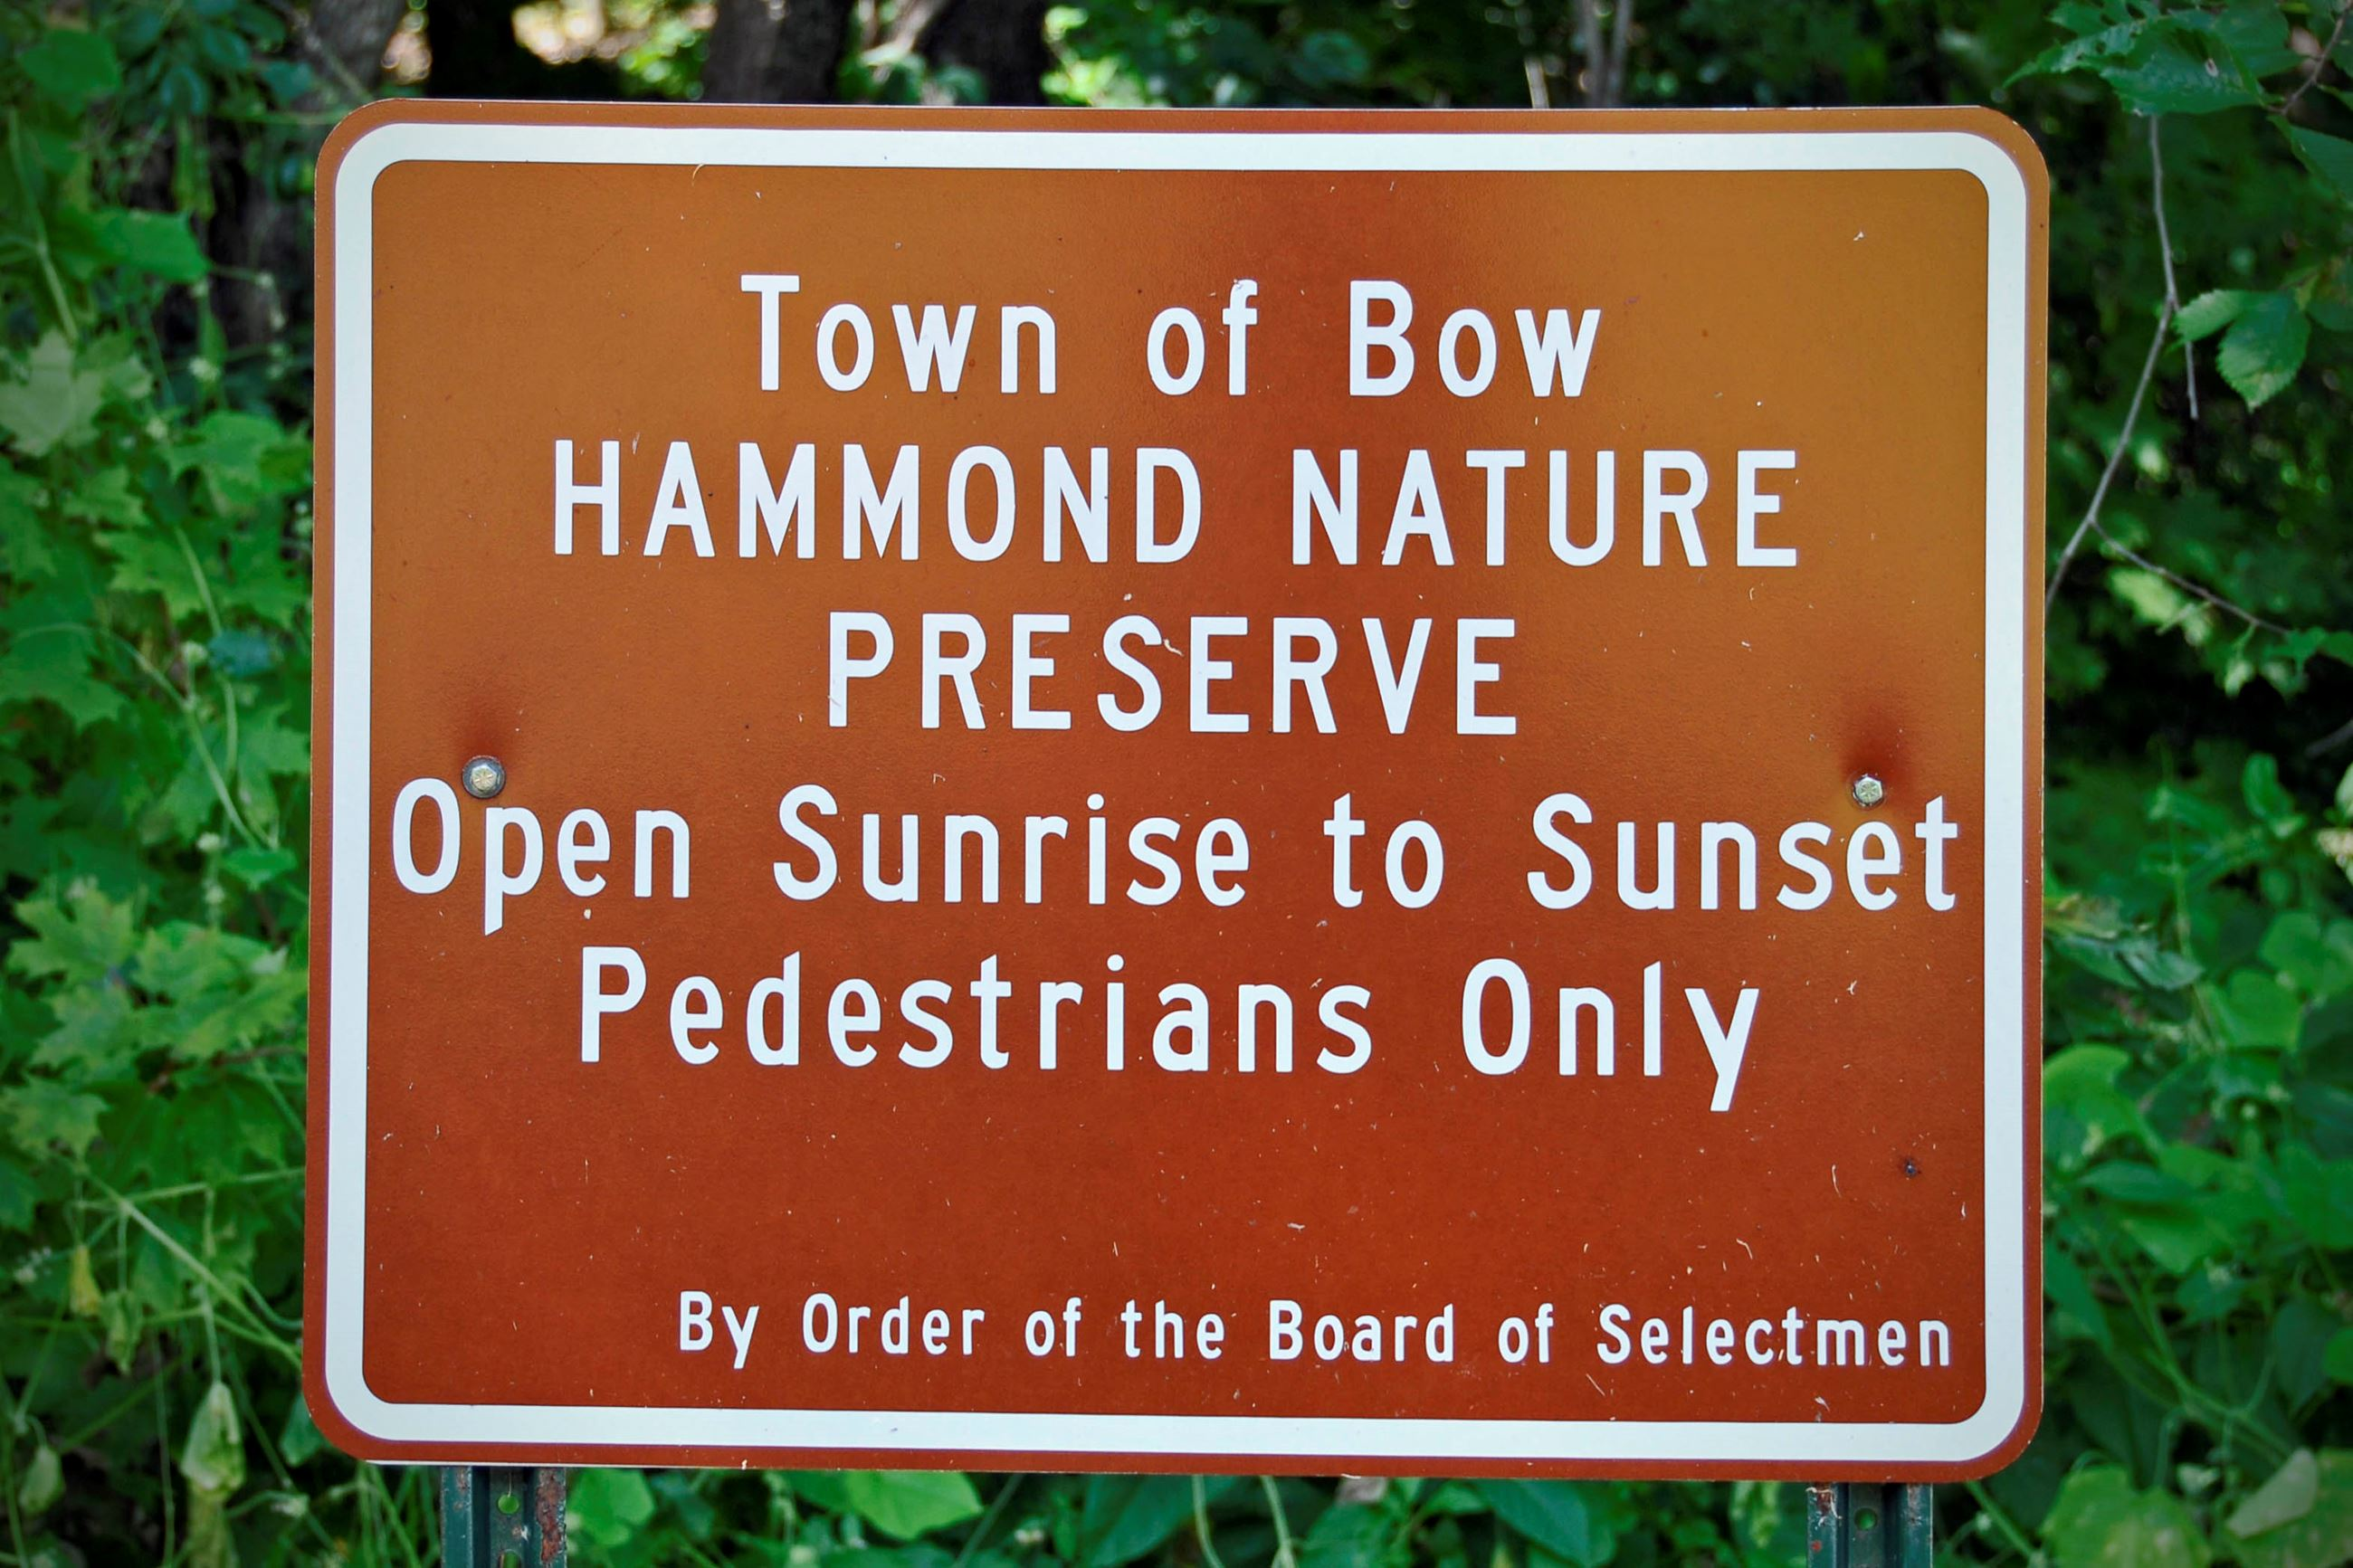 Hammond Nature Preserve (photo by Eric Anderson)